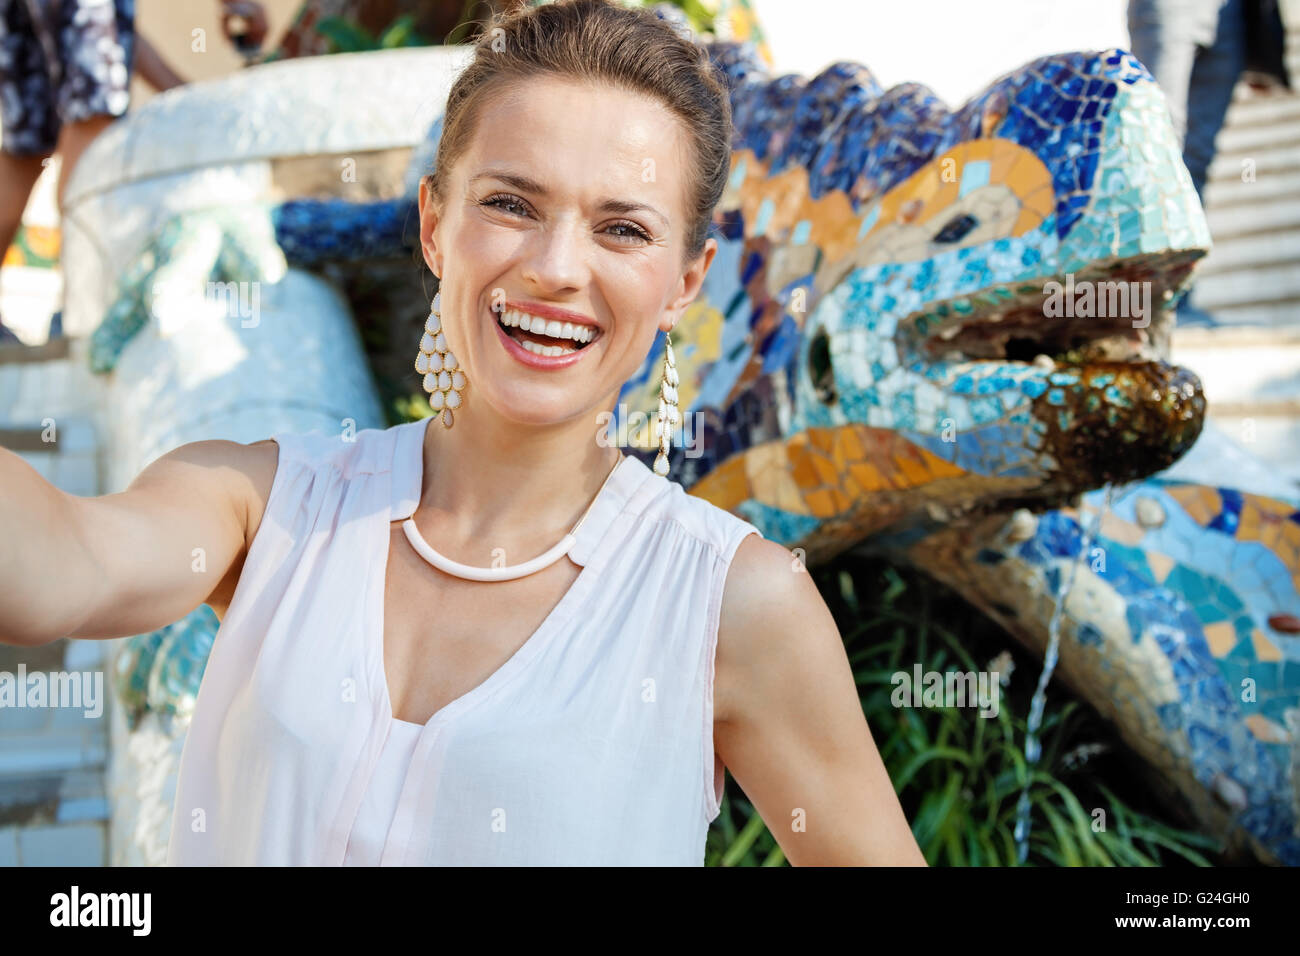 Get inspired by Park Guell in your next trip to Barcelona, Spain. Smiling young woman taking selfie near multicoloured Stock Photo